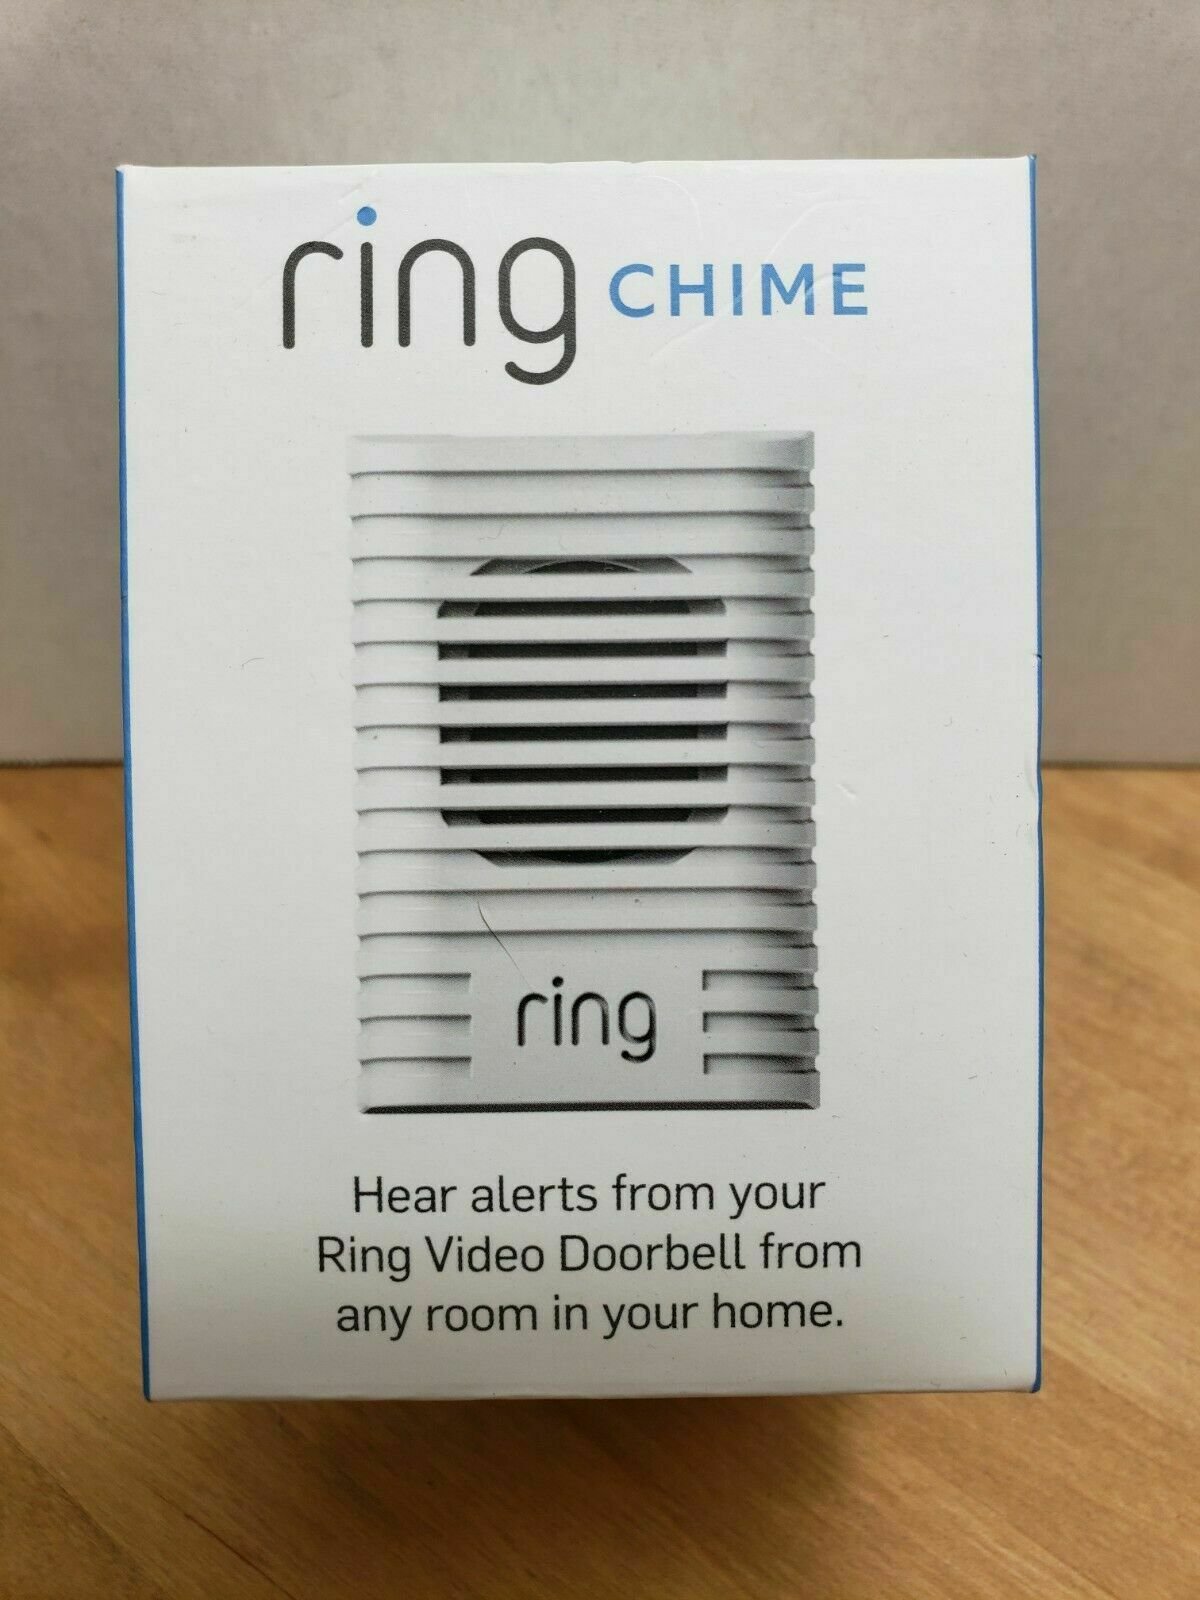 Ring Chime, A Wi-Fi-Enabled Speaker for Your Ring Video Door